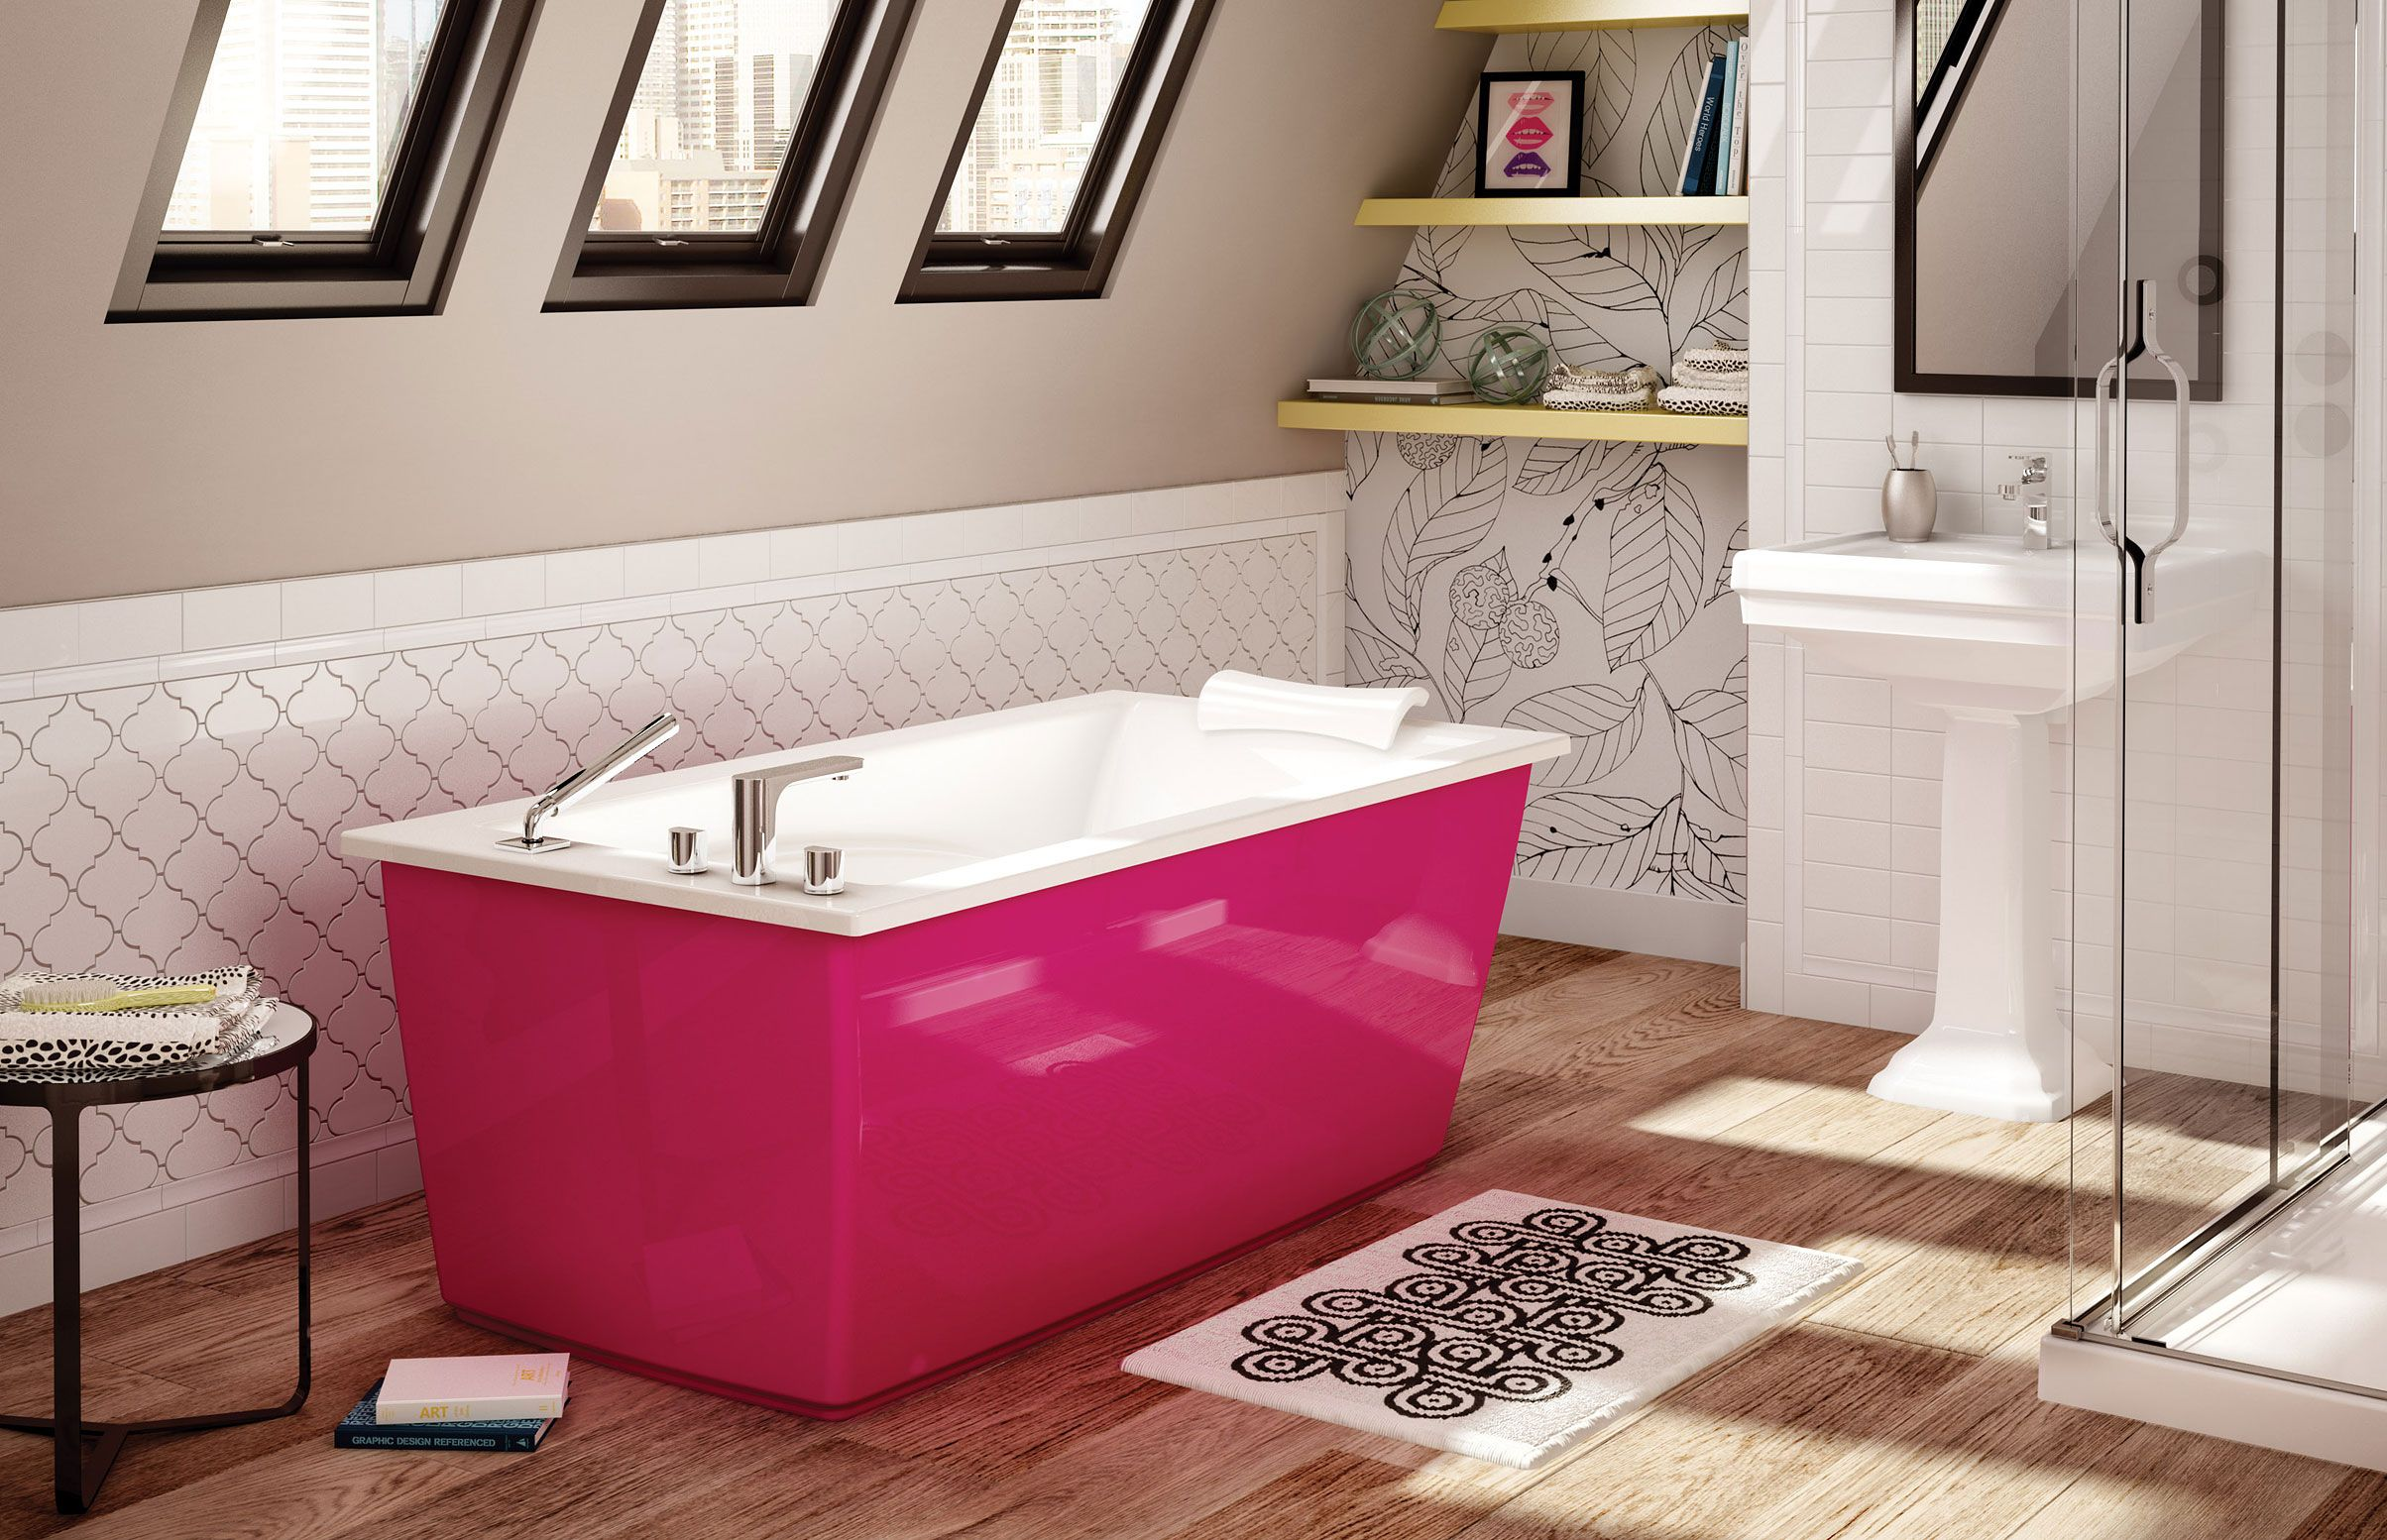 Image result for freestanding tubs